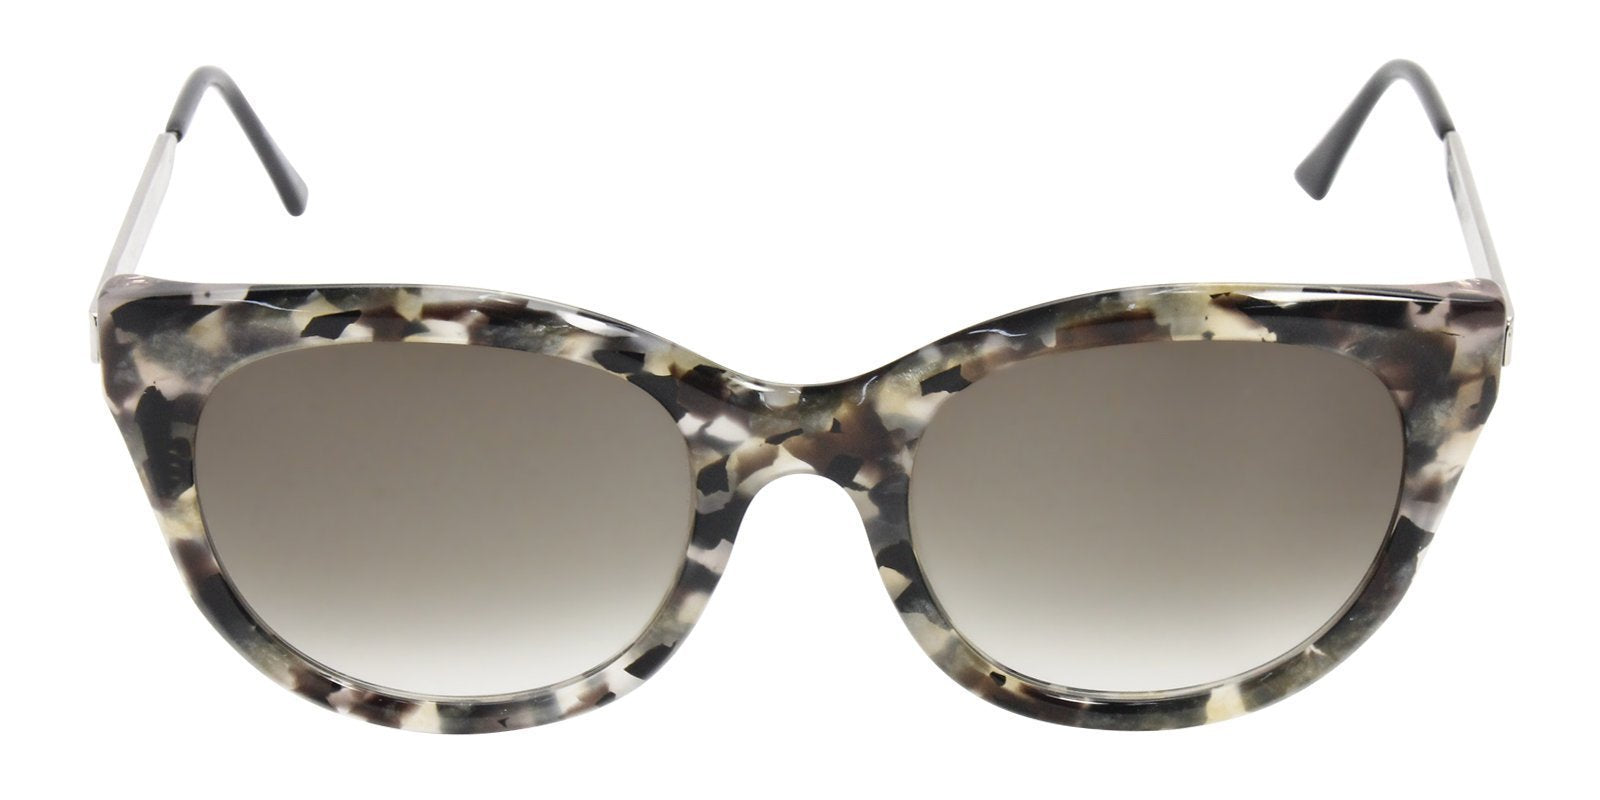 Thierry Lasry - Dirtymindy Gray Oval Women Sunglasses - 56mm-Sunglasses-Designer Eyes